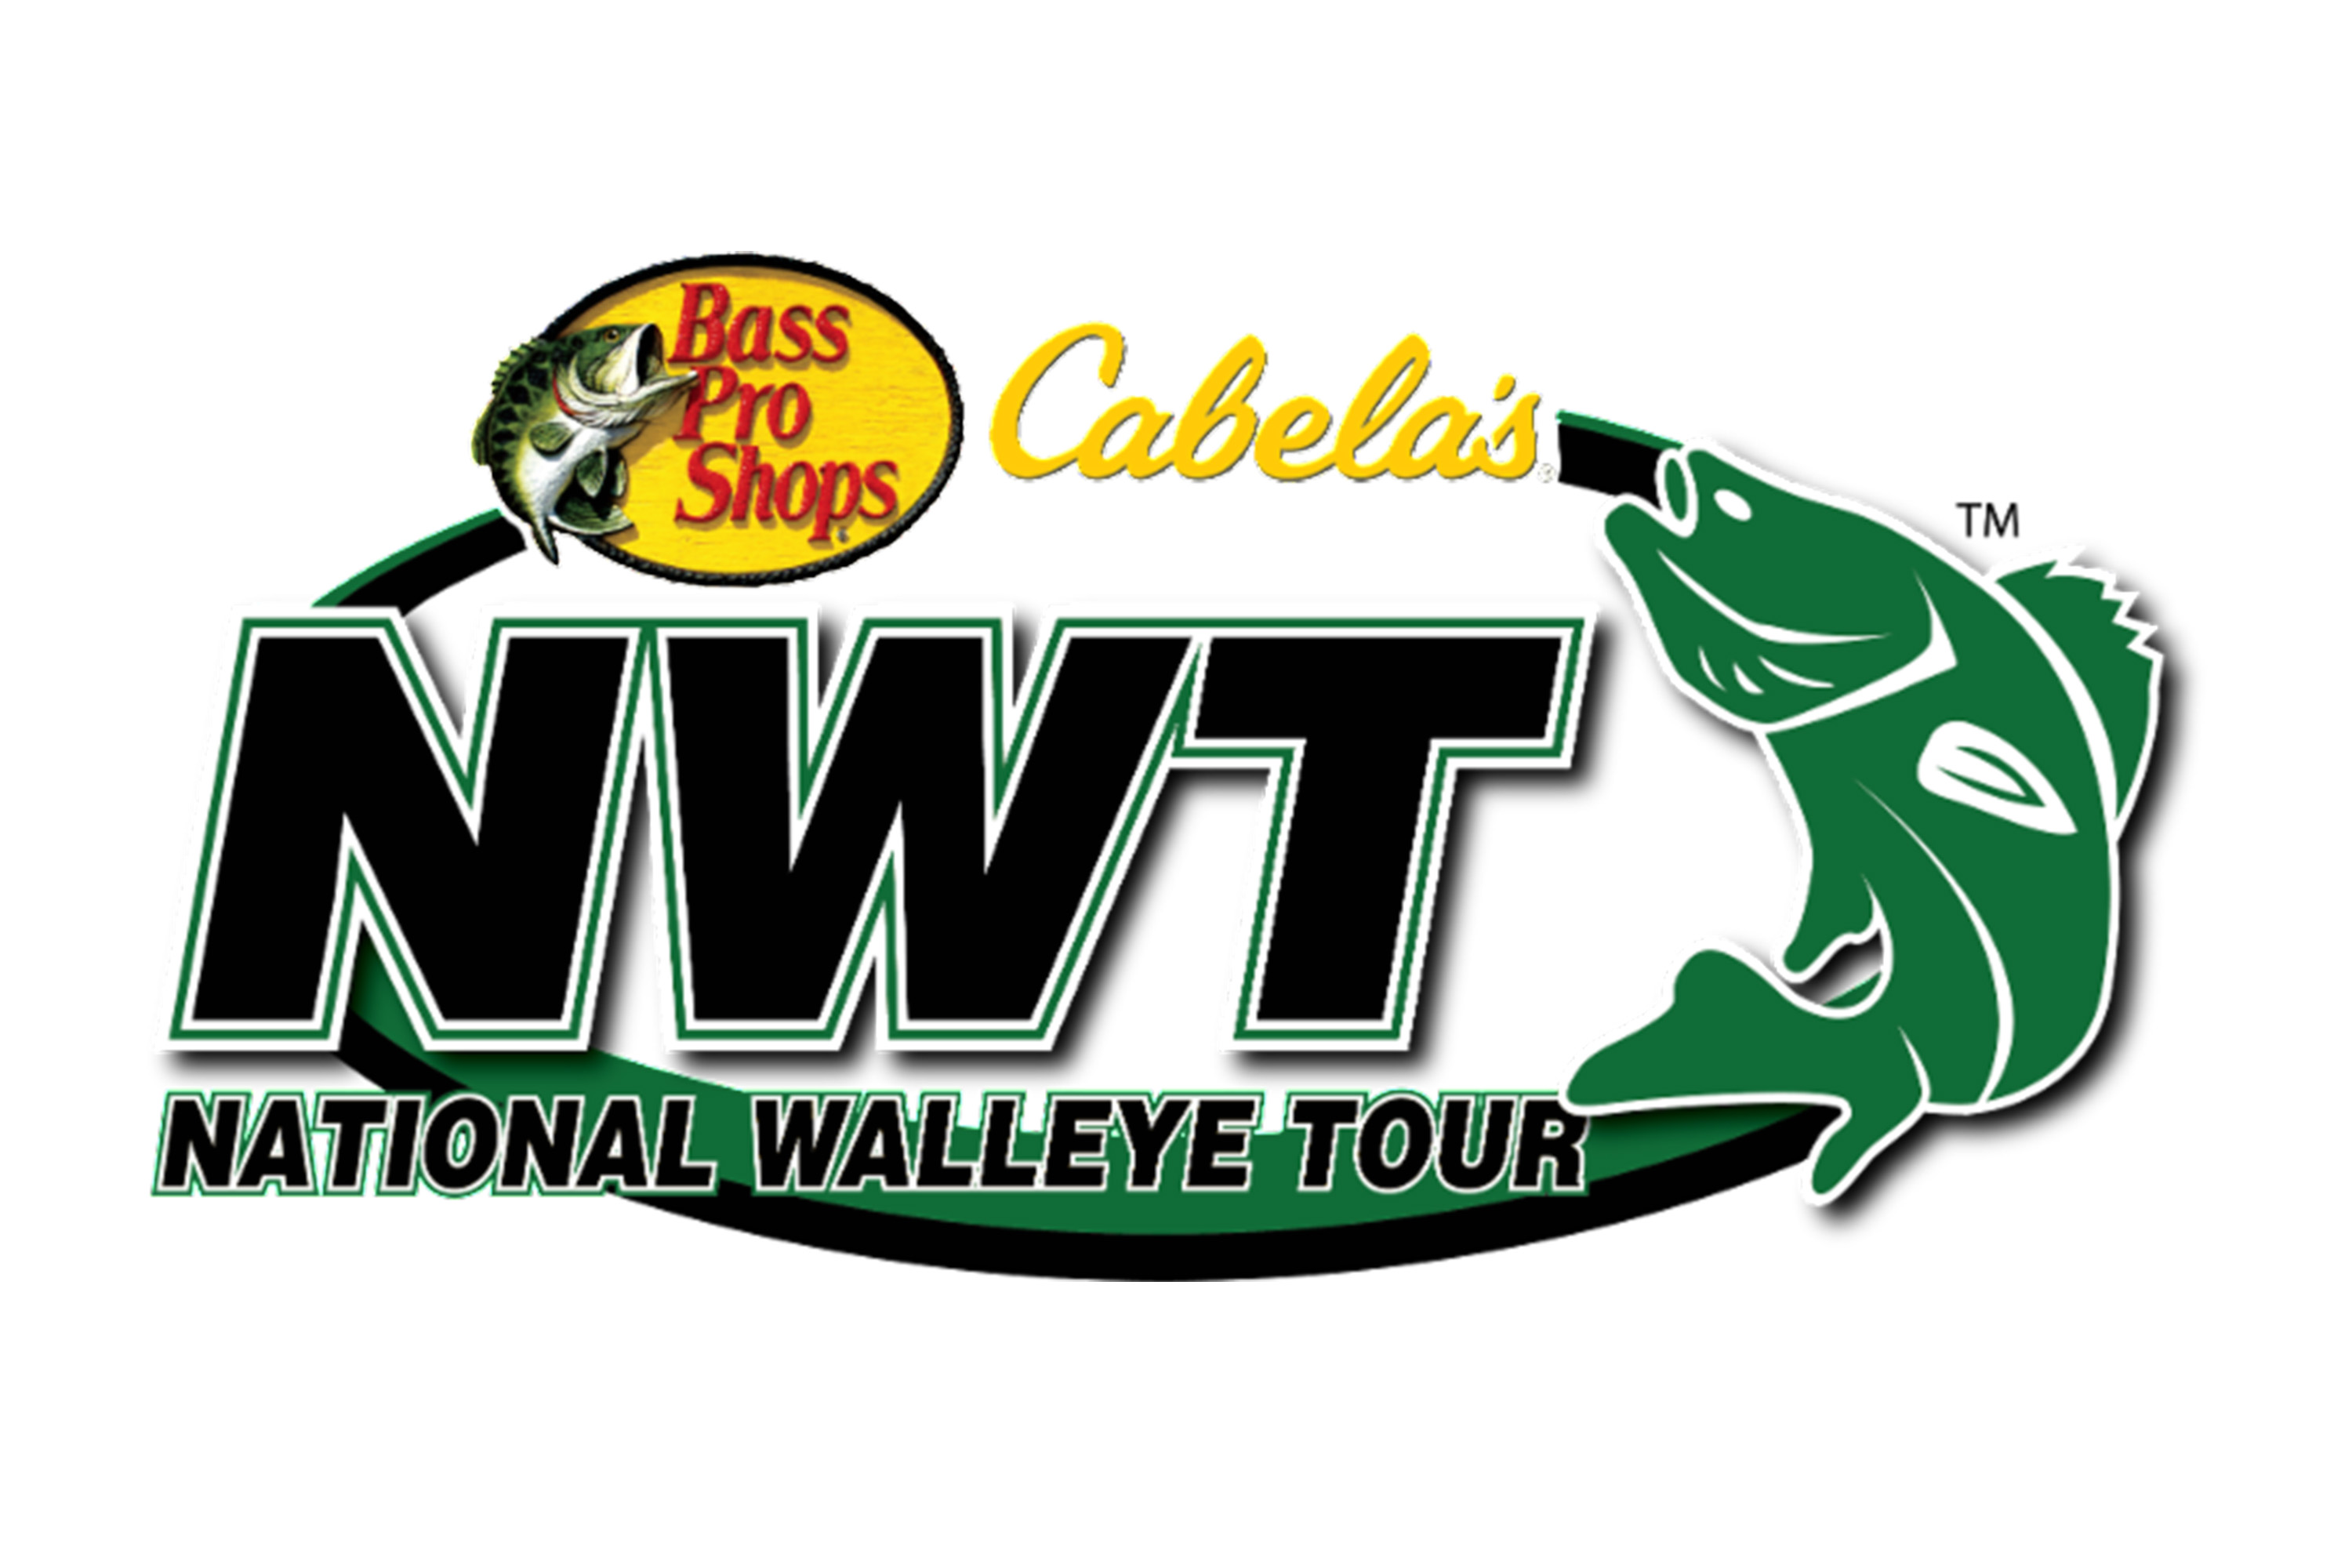 National Walleye Tour Logo